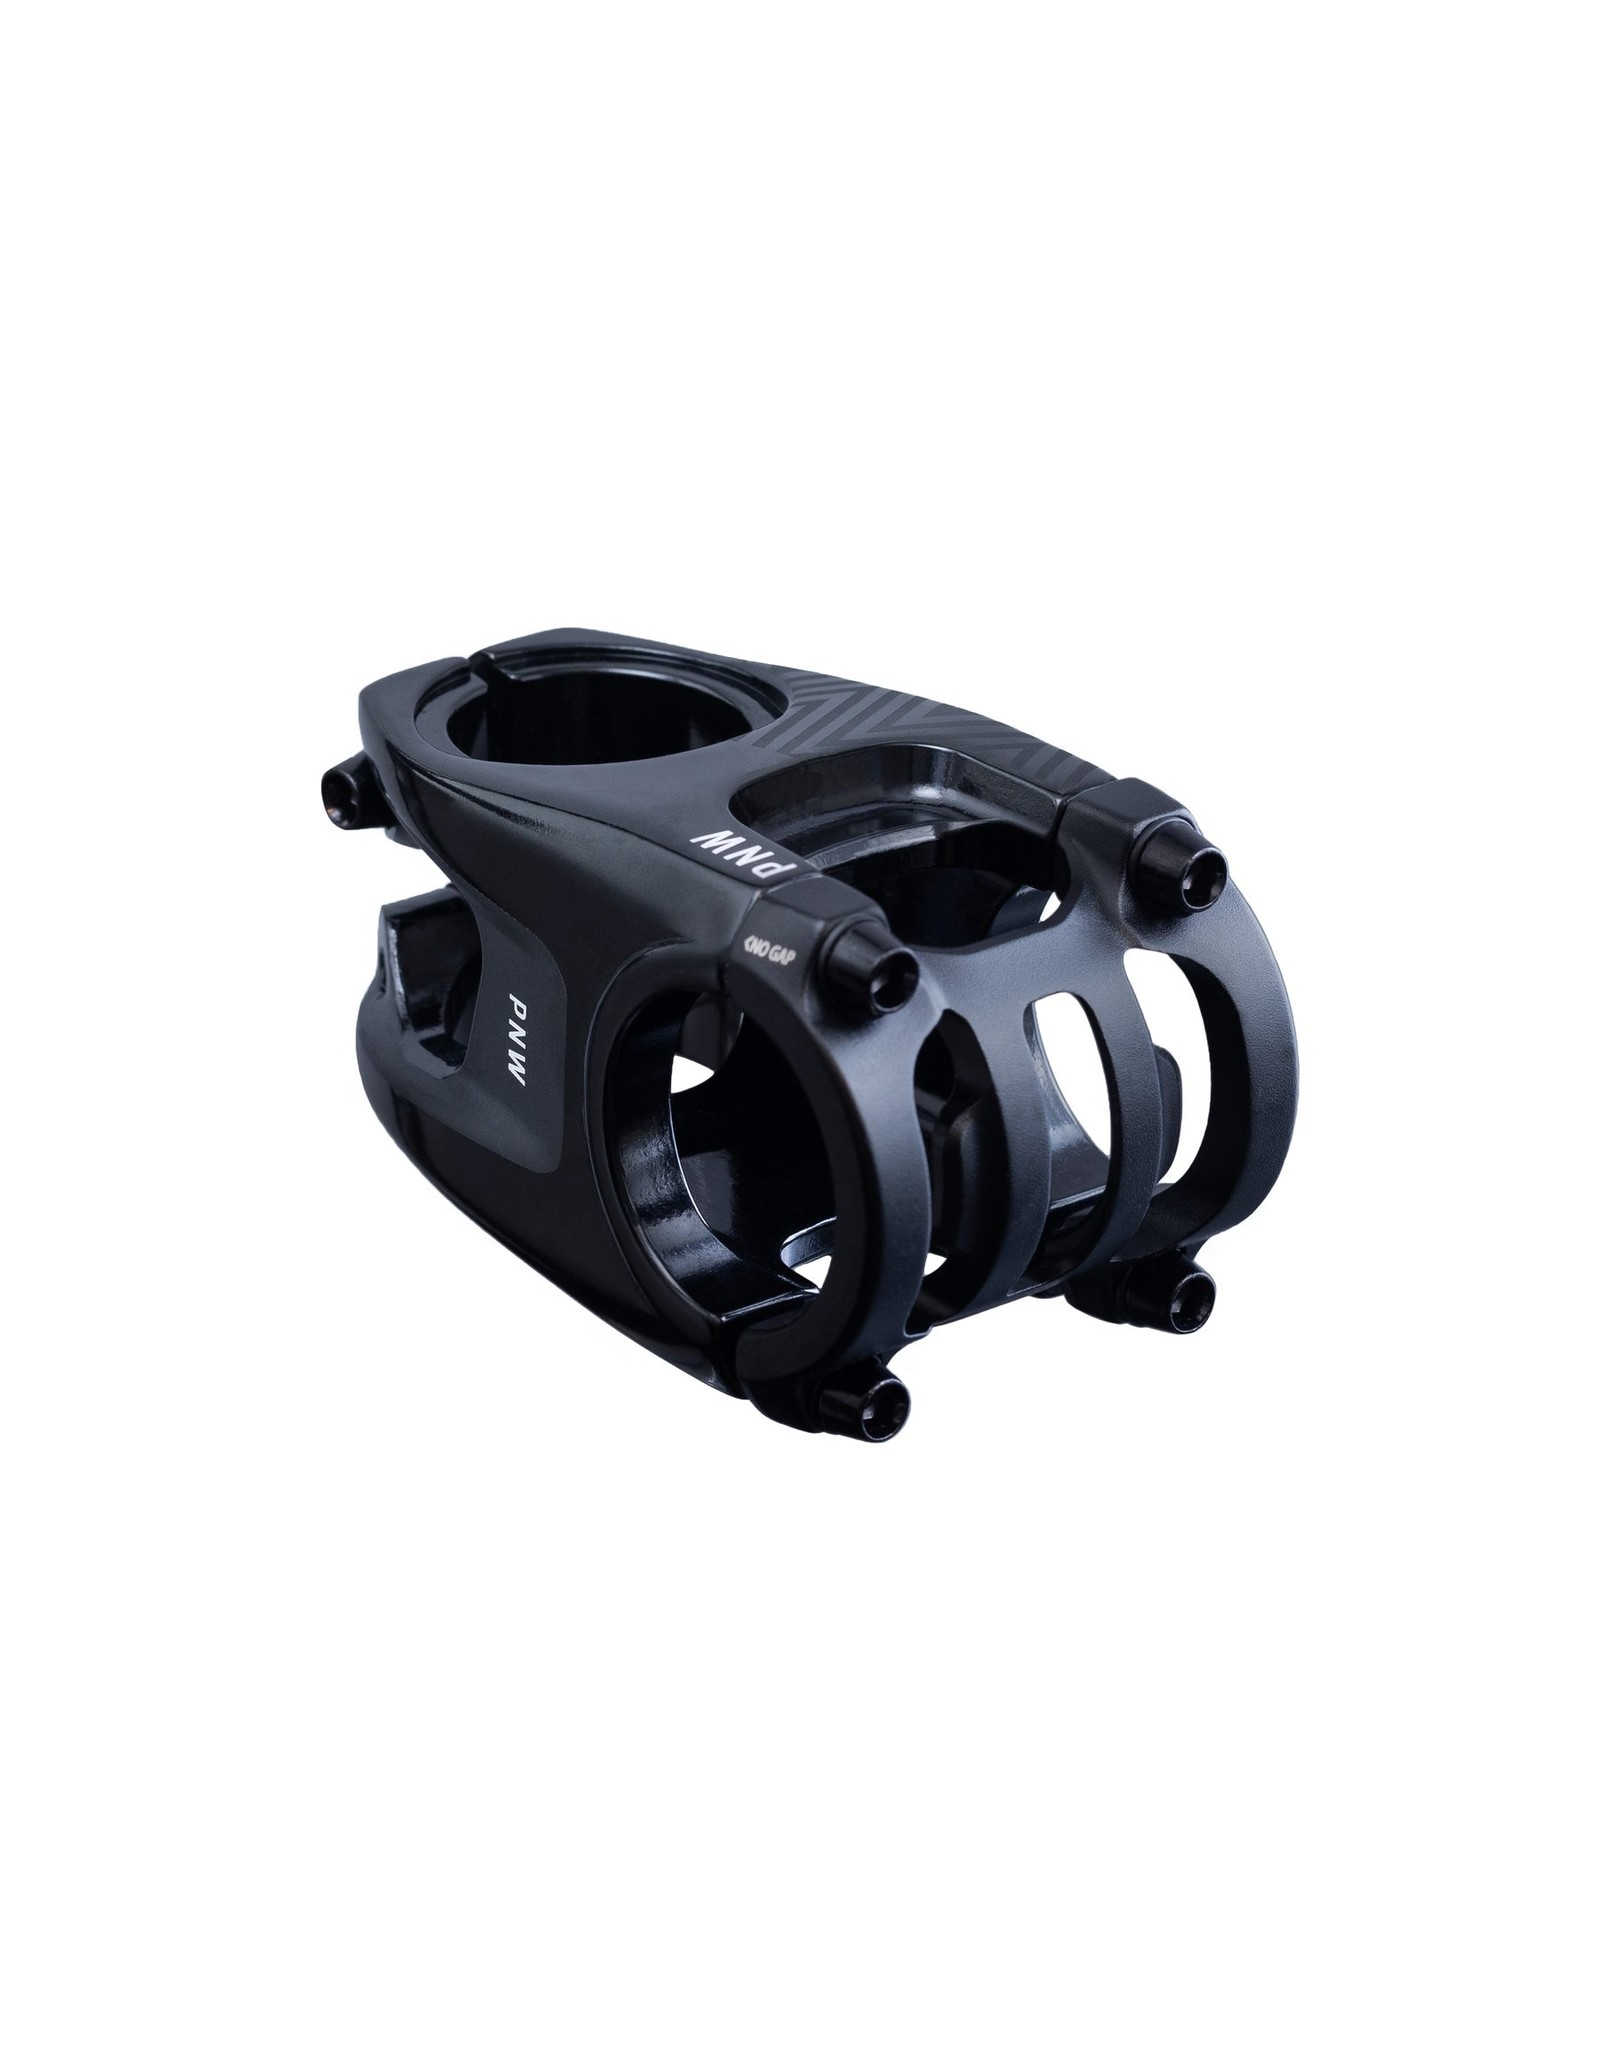 PNW Components THE RANGE STEM WITH GOPRO OR HEADLIGHT MOUNT 50mm